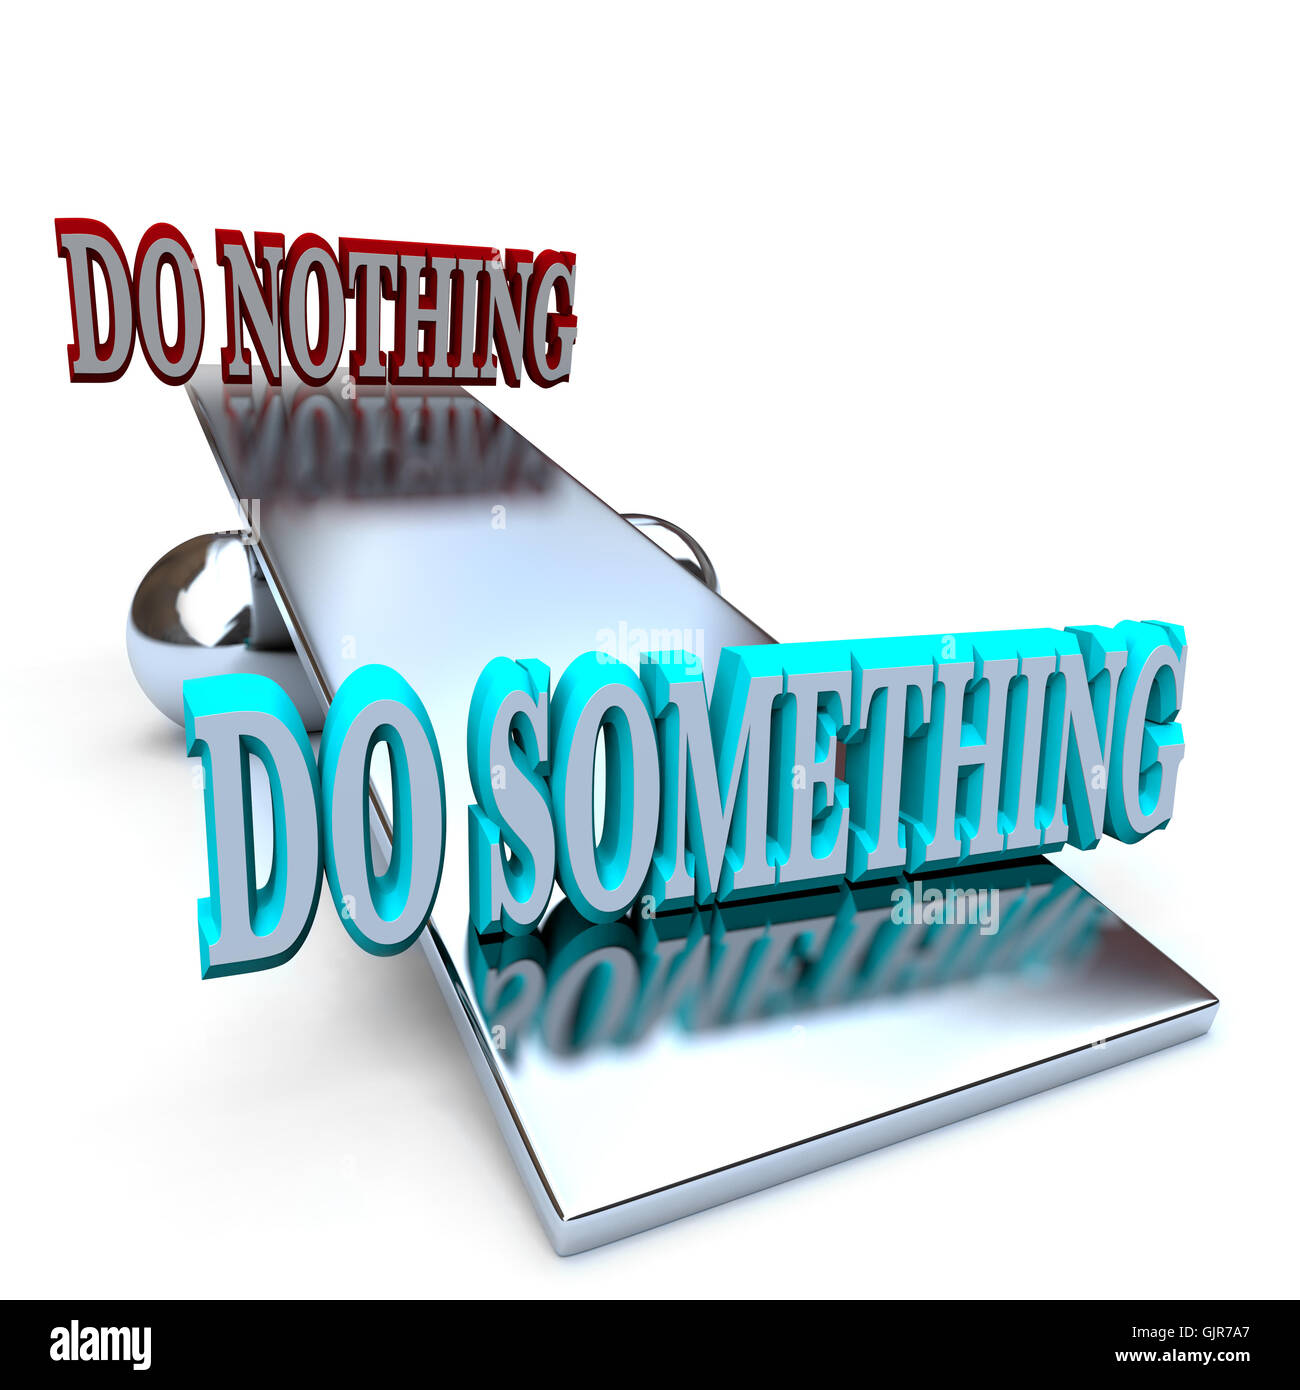 Do Something vs Doing Nothing - Taking a Stand - Stock Image